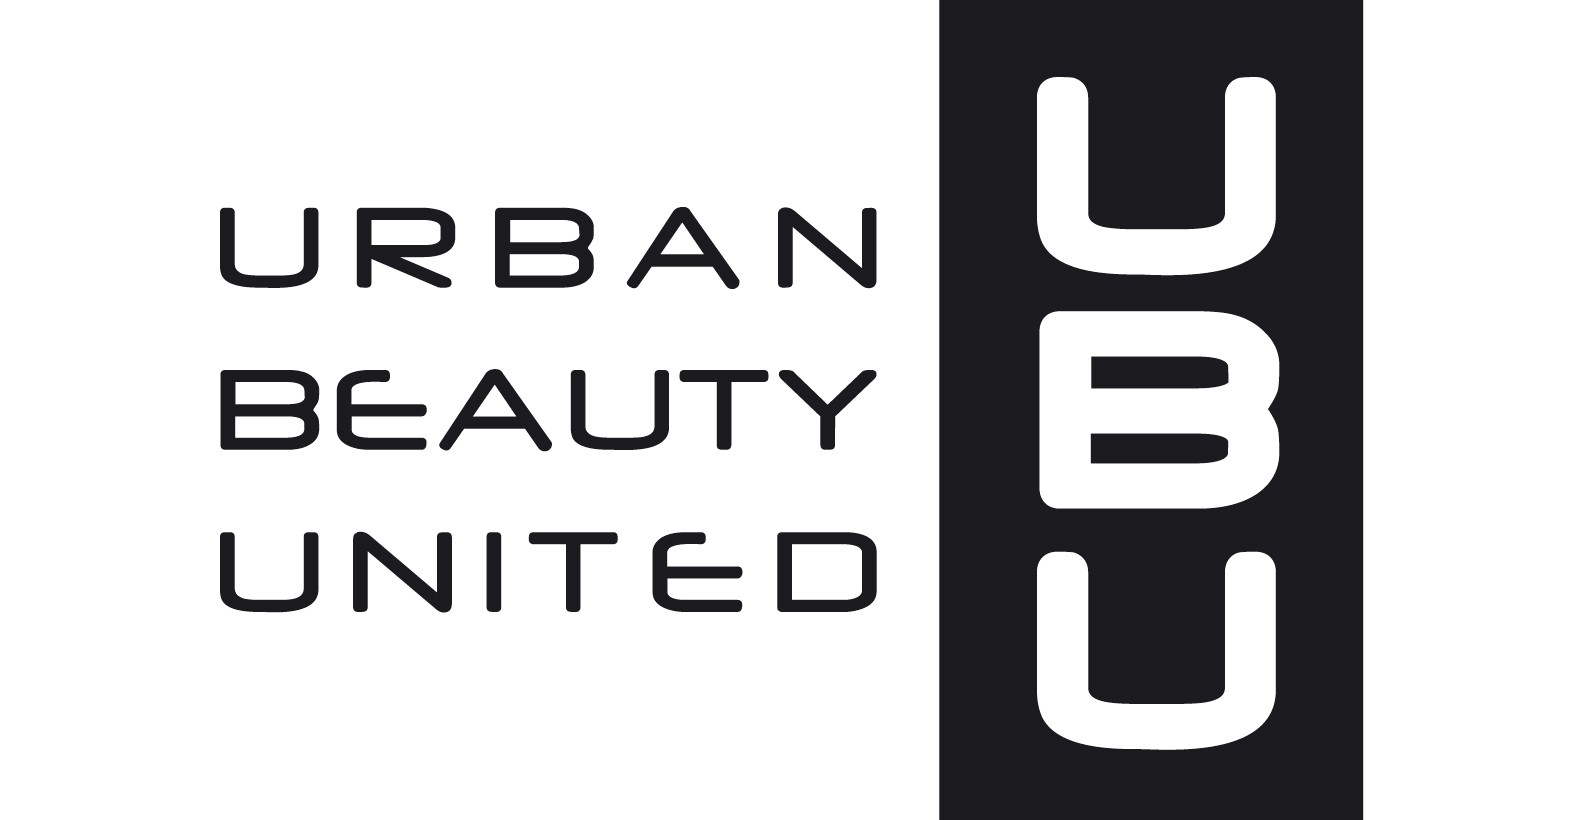 UBU Urban Beauty United